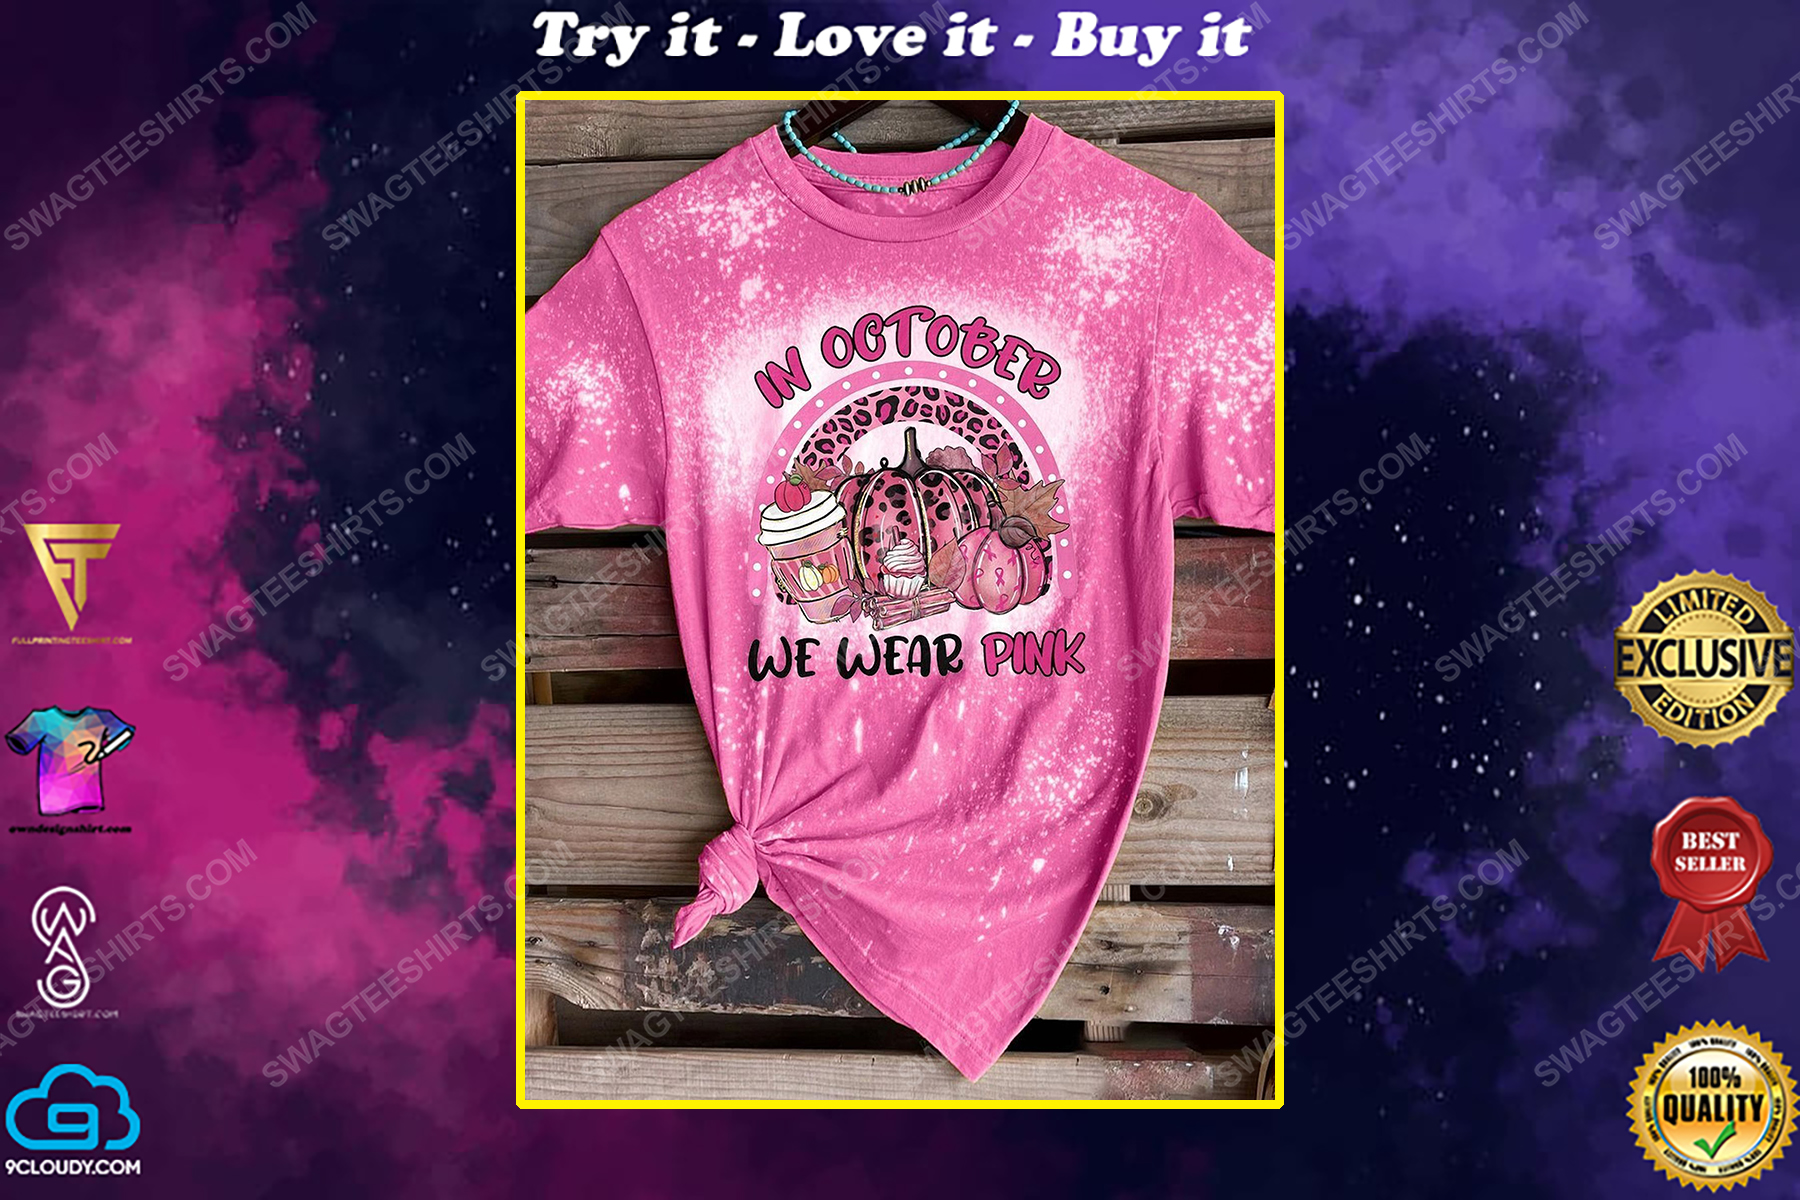 Breast cancer awareness in october we wear pink pumpkin and ghost halloween bleached shirt